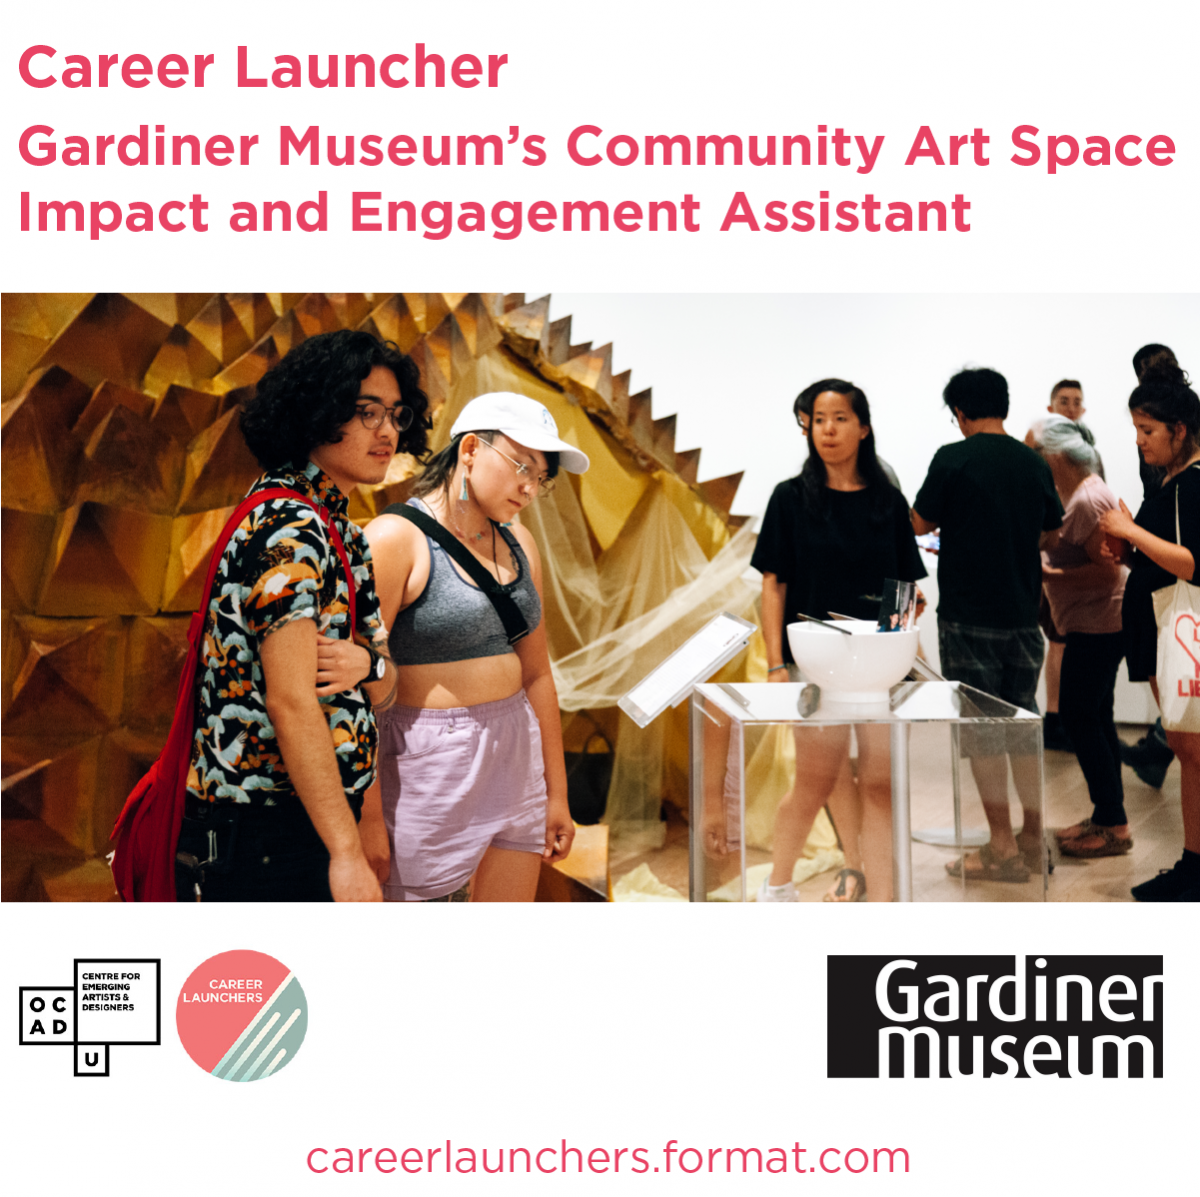 Call for Applications - Gardiner Museum Impact & Engagement Assistant